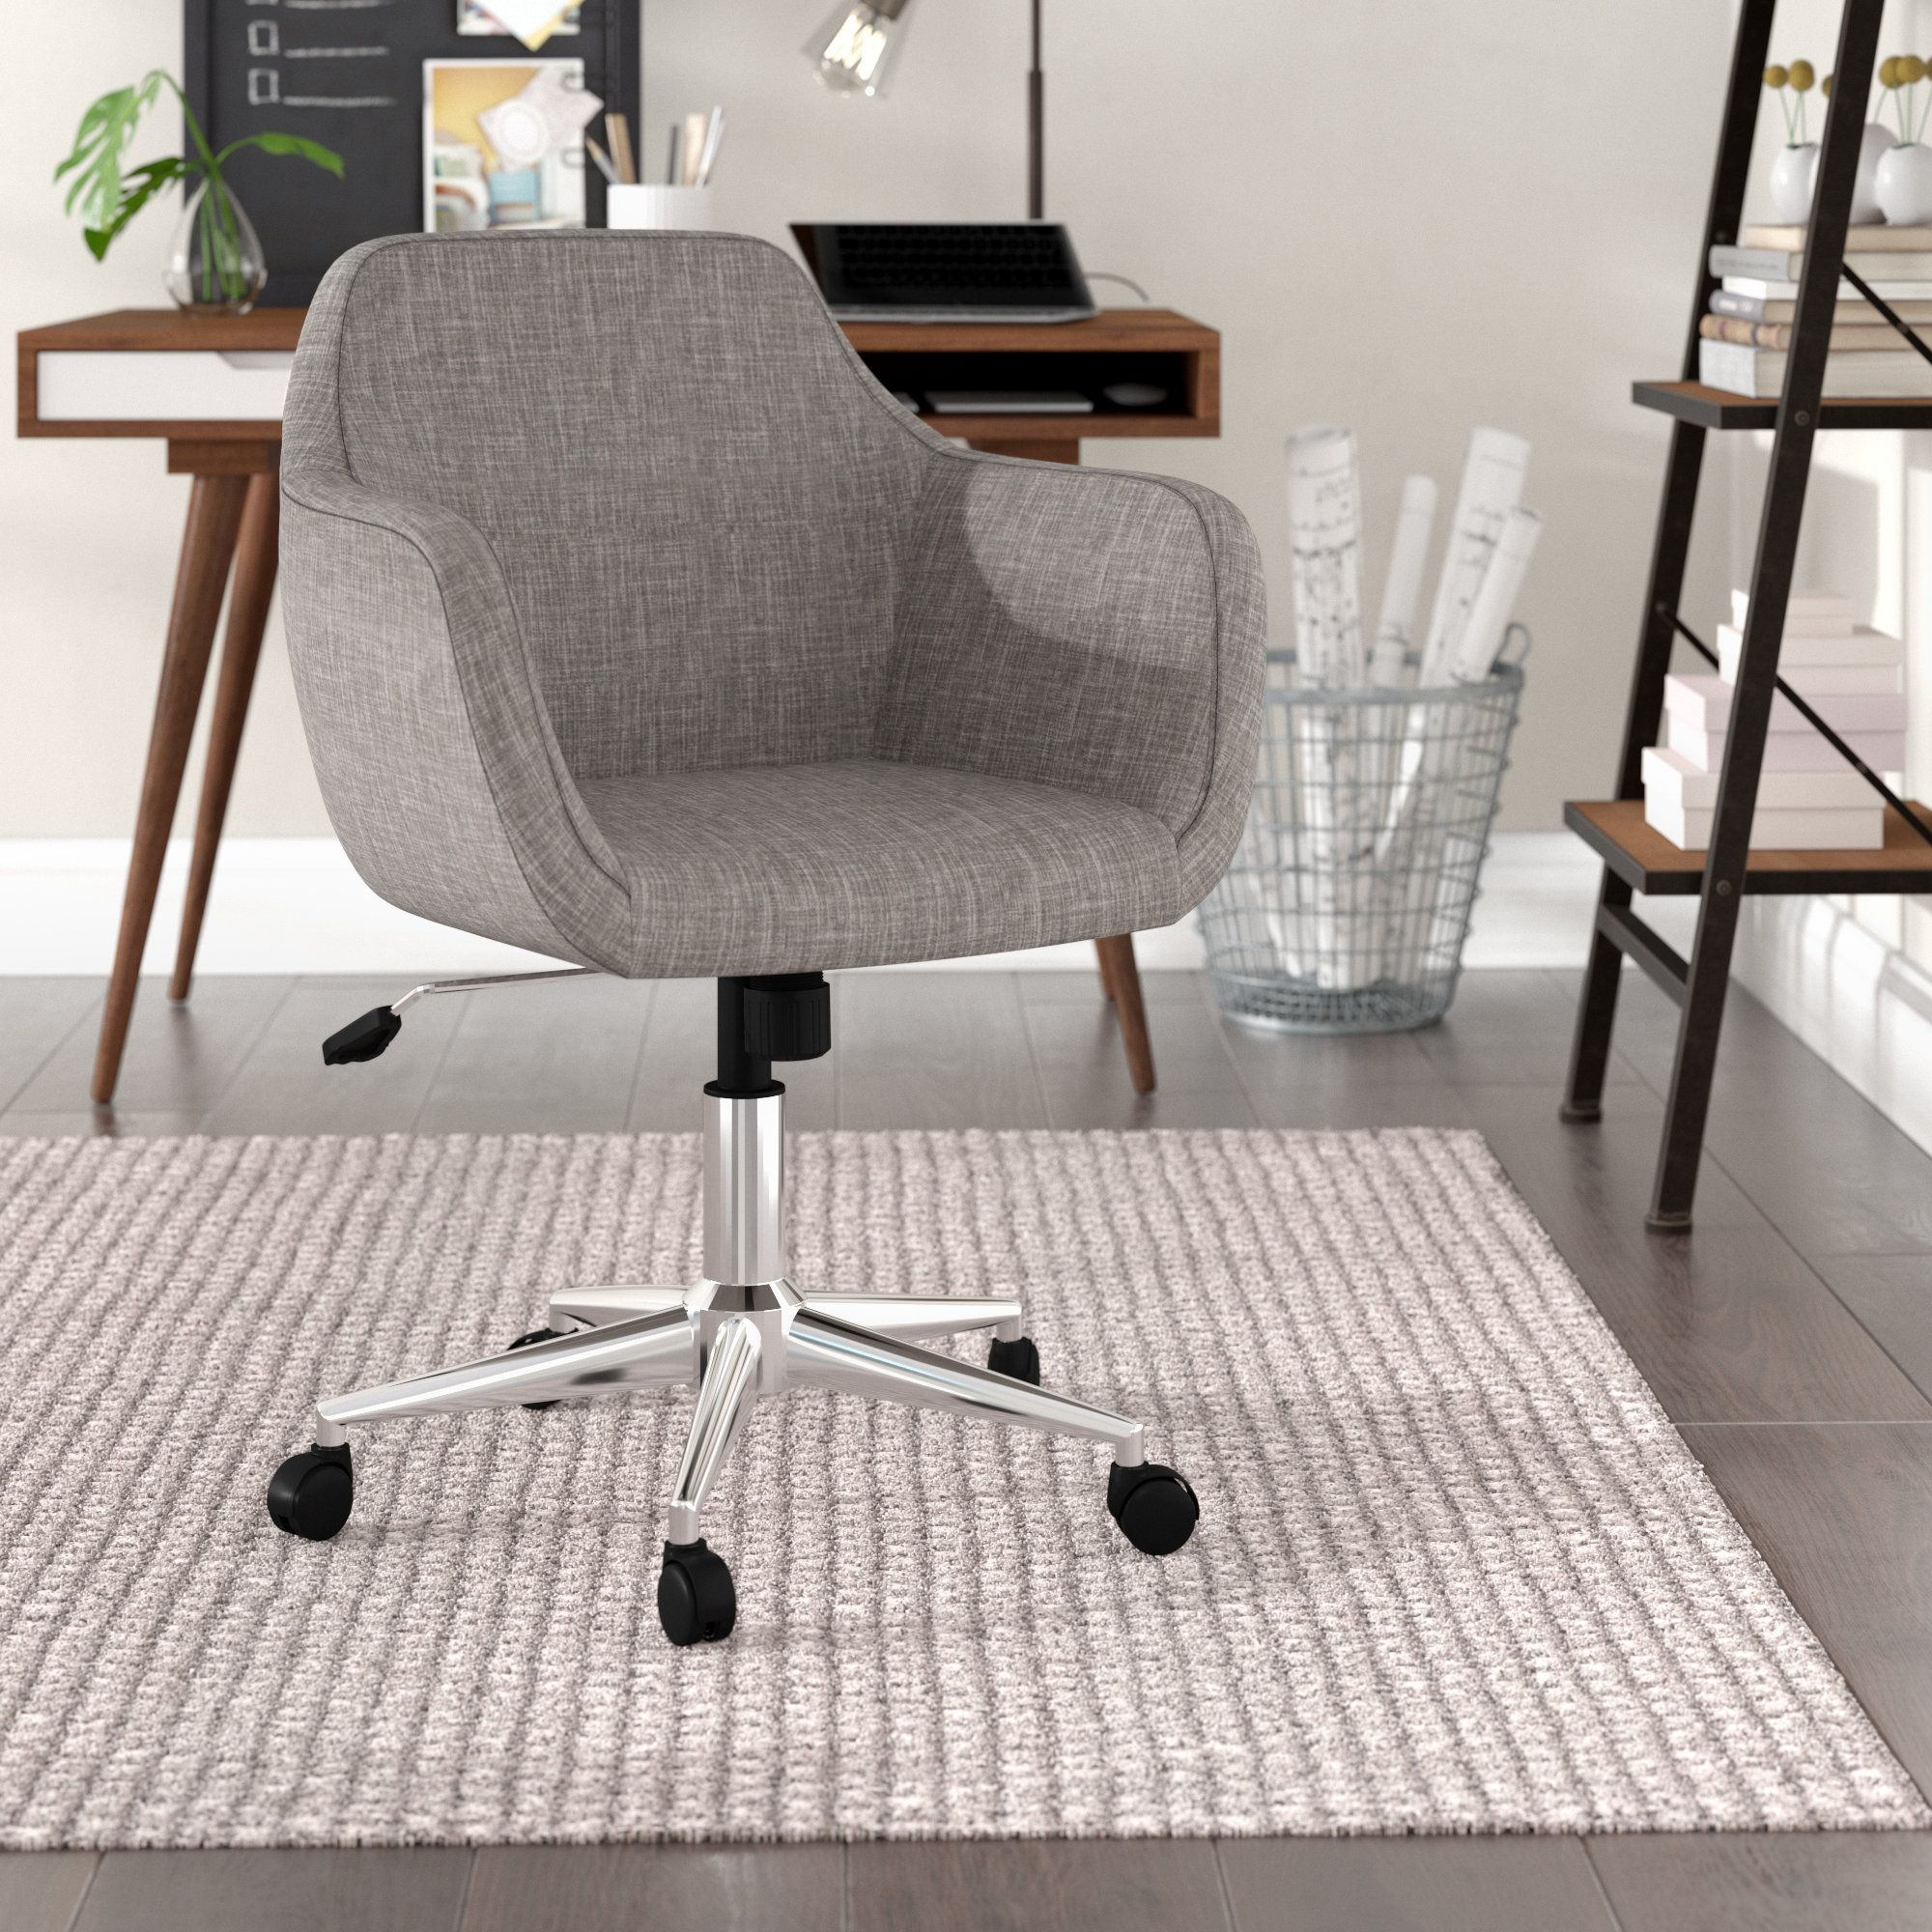 Upholstered Office Chair With Images Home Office Chairs Luxury Office Chairs Cheap Office Furniture